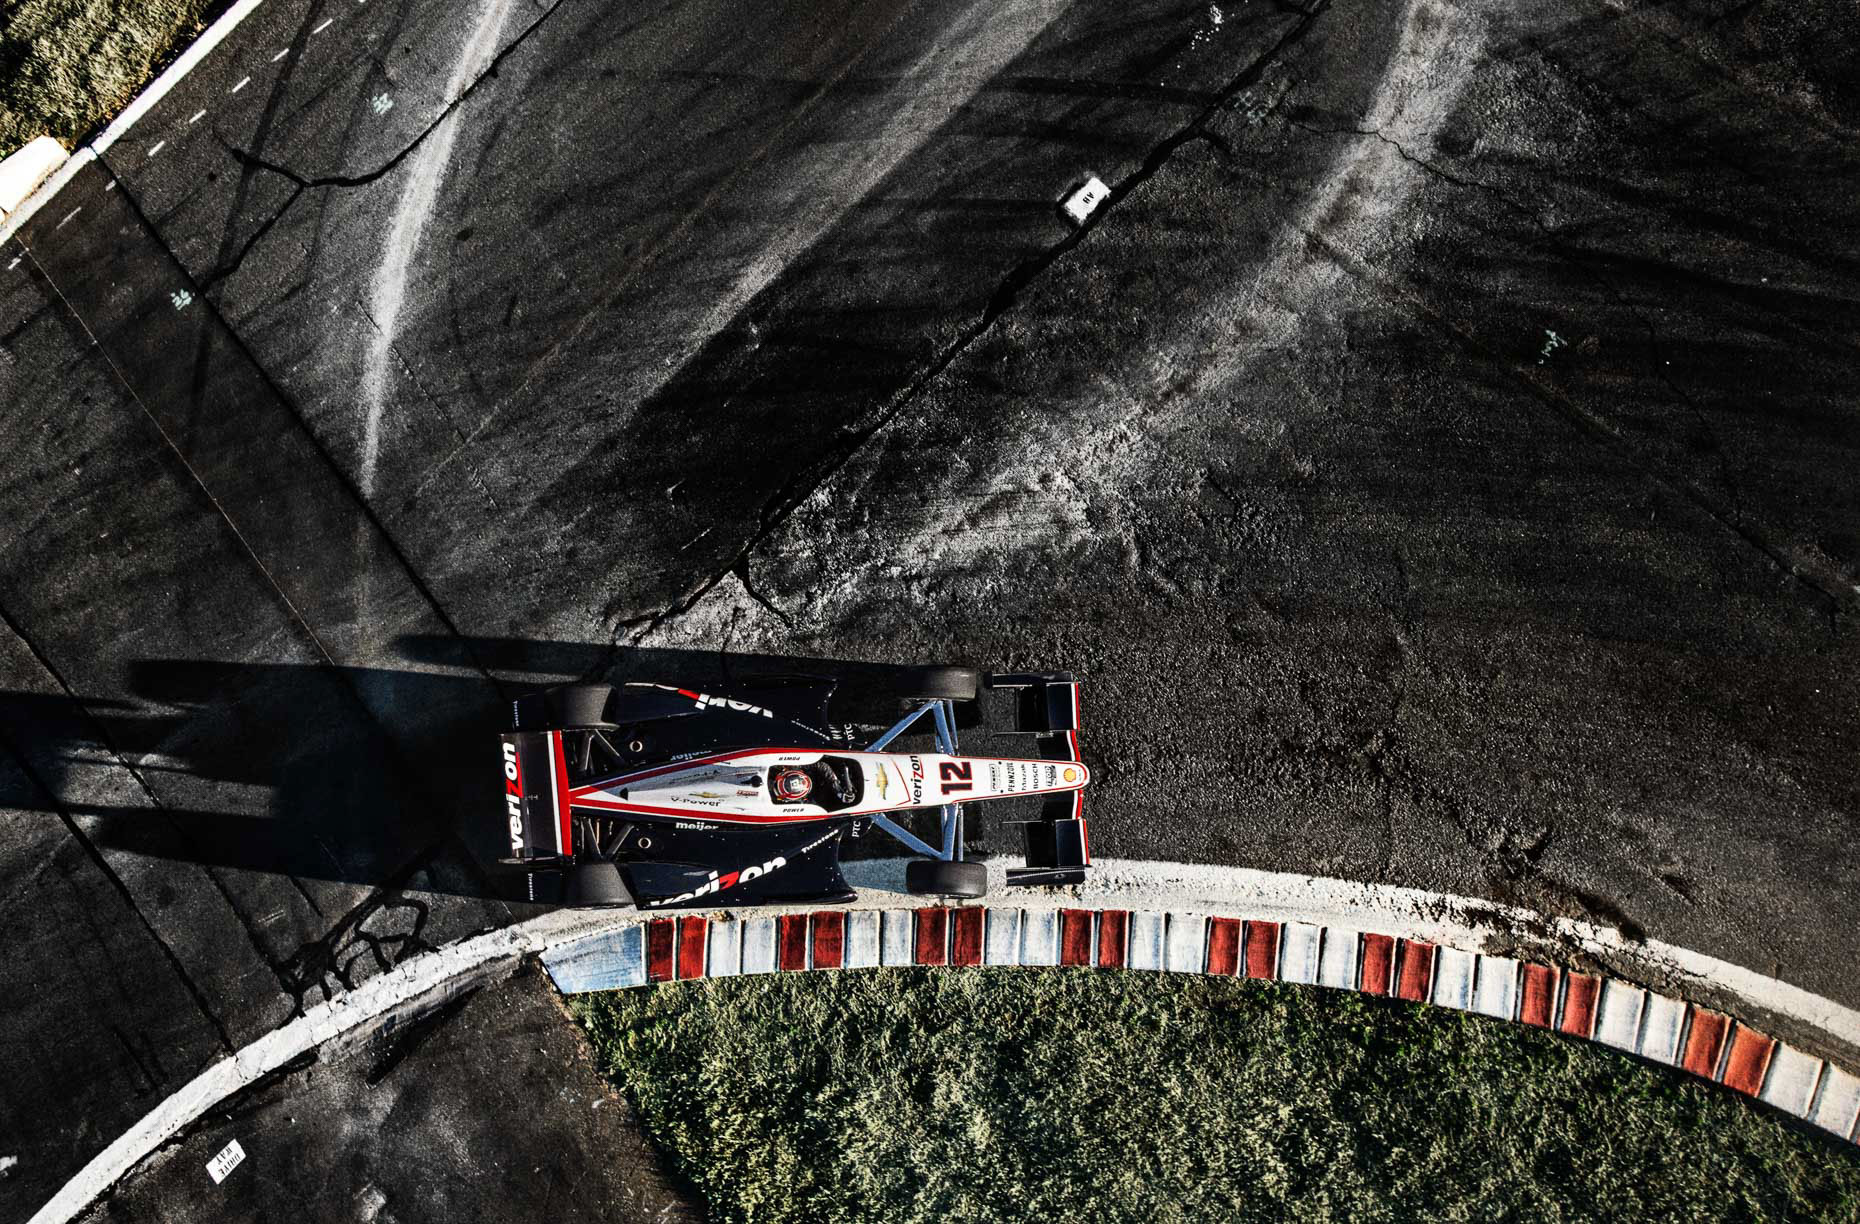 aerial drone Racecar driver Will Power IndyCar #12Team Penske Charlotte Motor Speedway by Andy Batt.